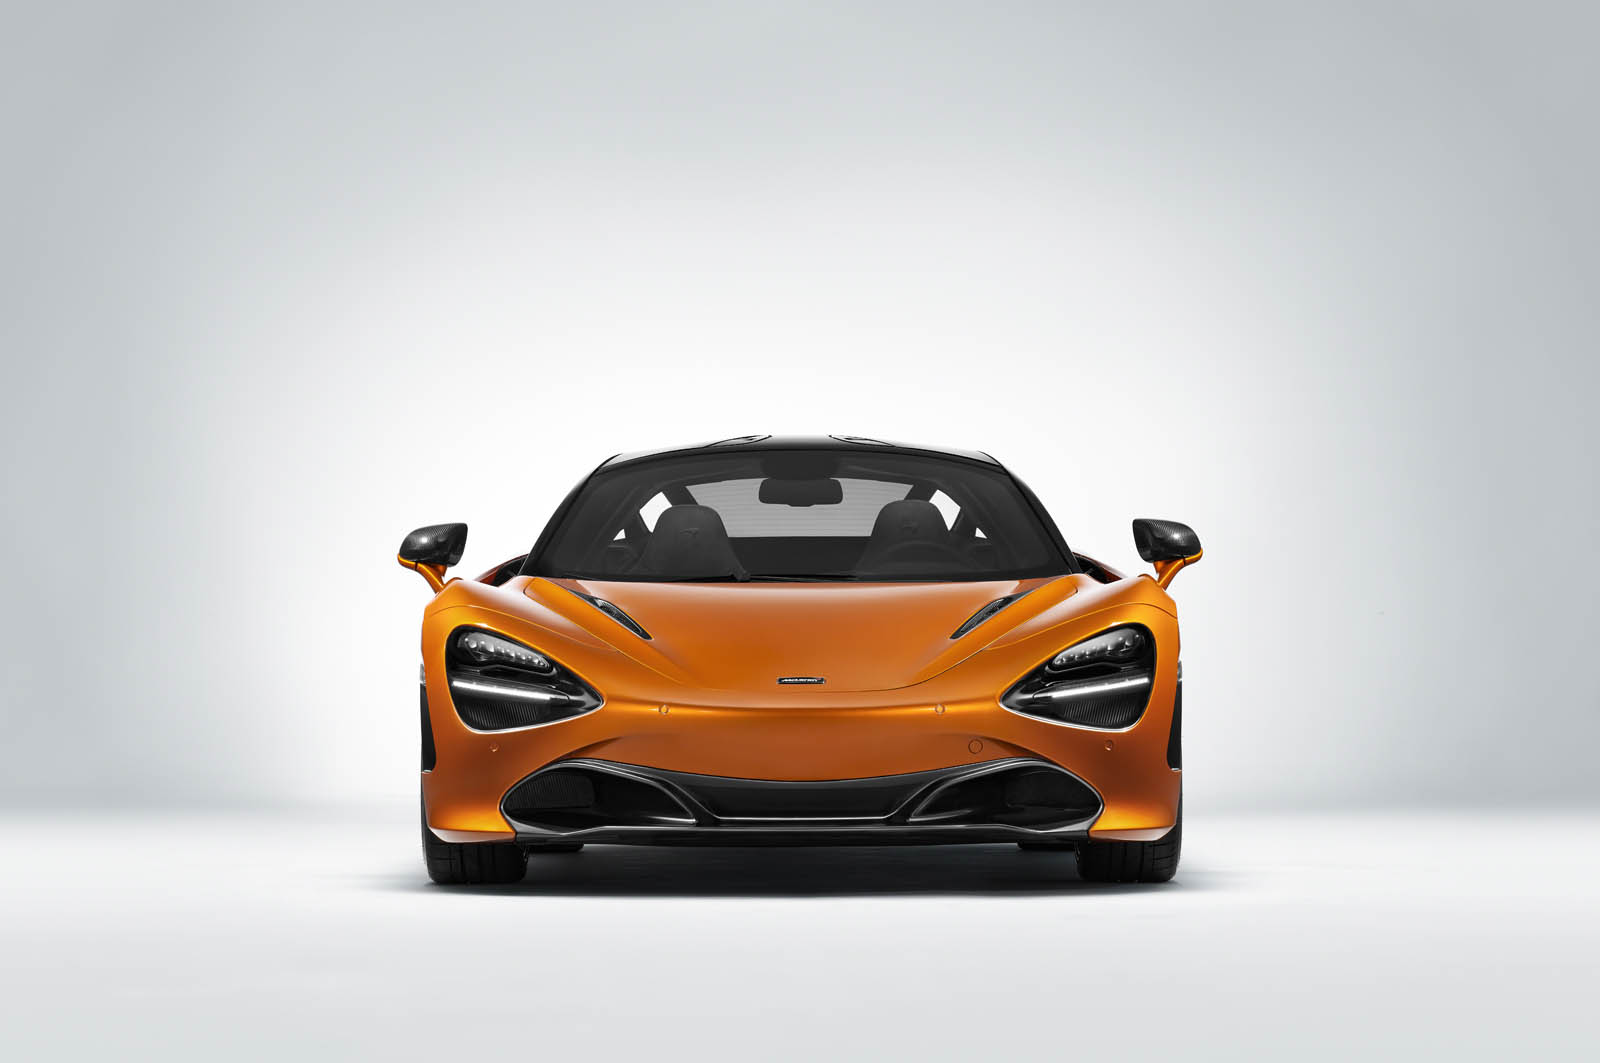 mclaren automotive the surrey england based manufacturer of luxury high performance sports and supercars has renewed the super series product family at  [ 1600 x 1063 Pixel ]